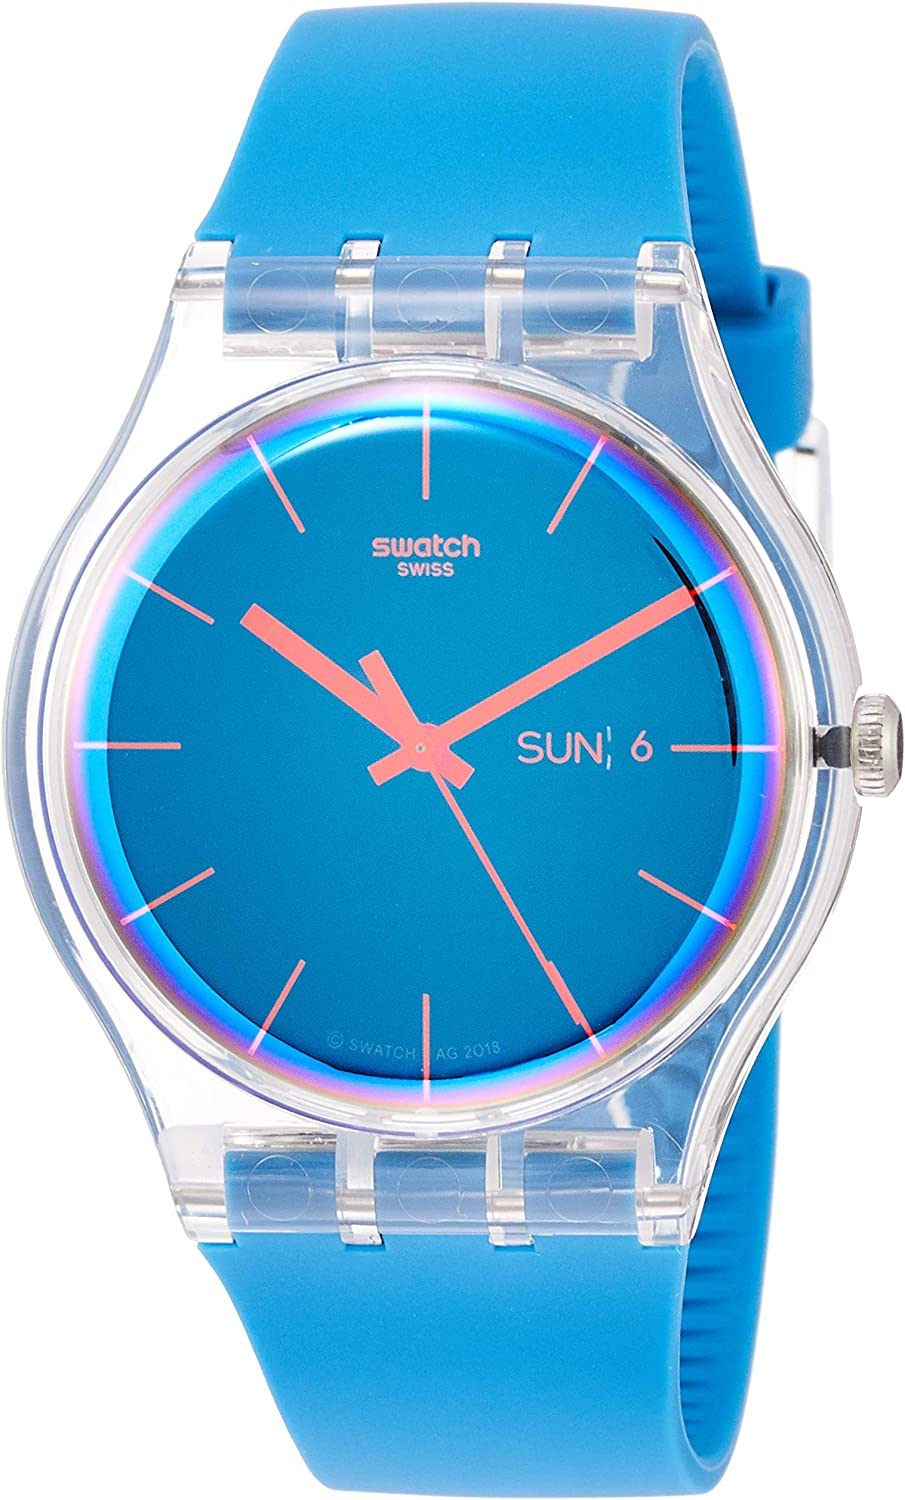 Swatch Men's Quartz Watch with Silicone Strap, Blue, 20 (Model: SUOK711)